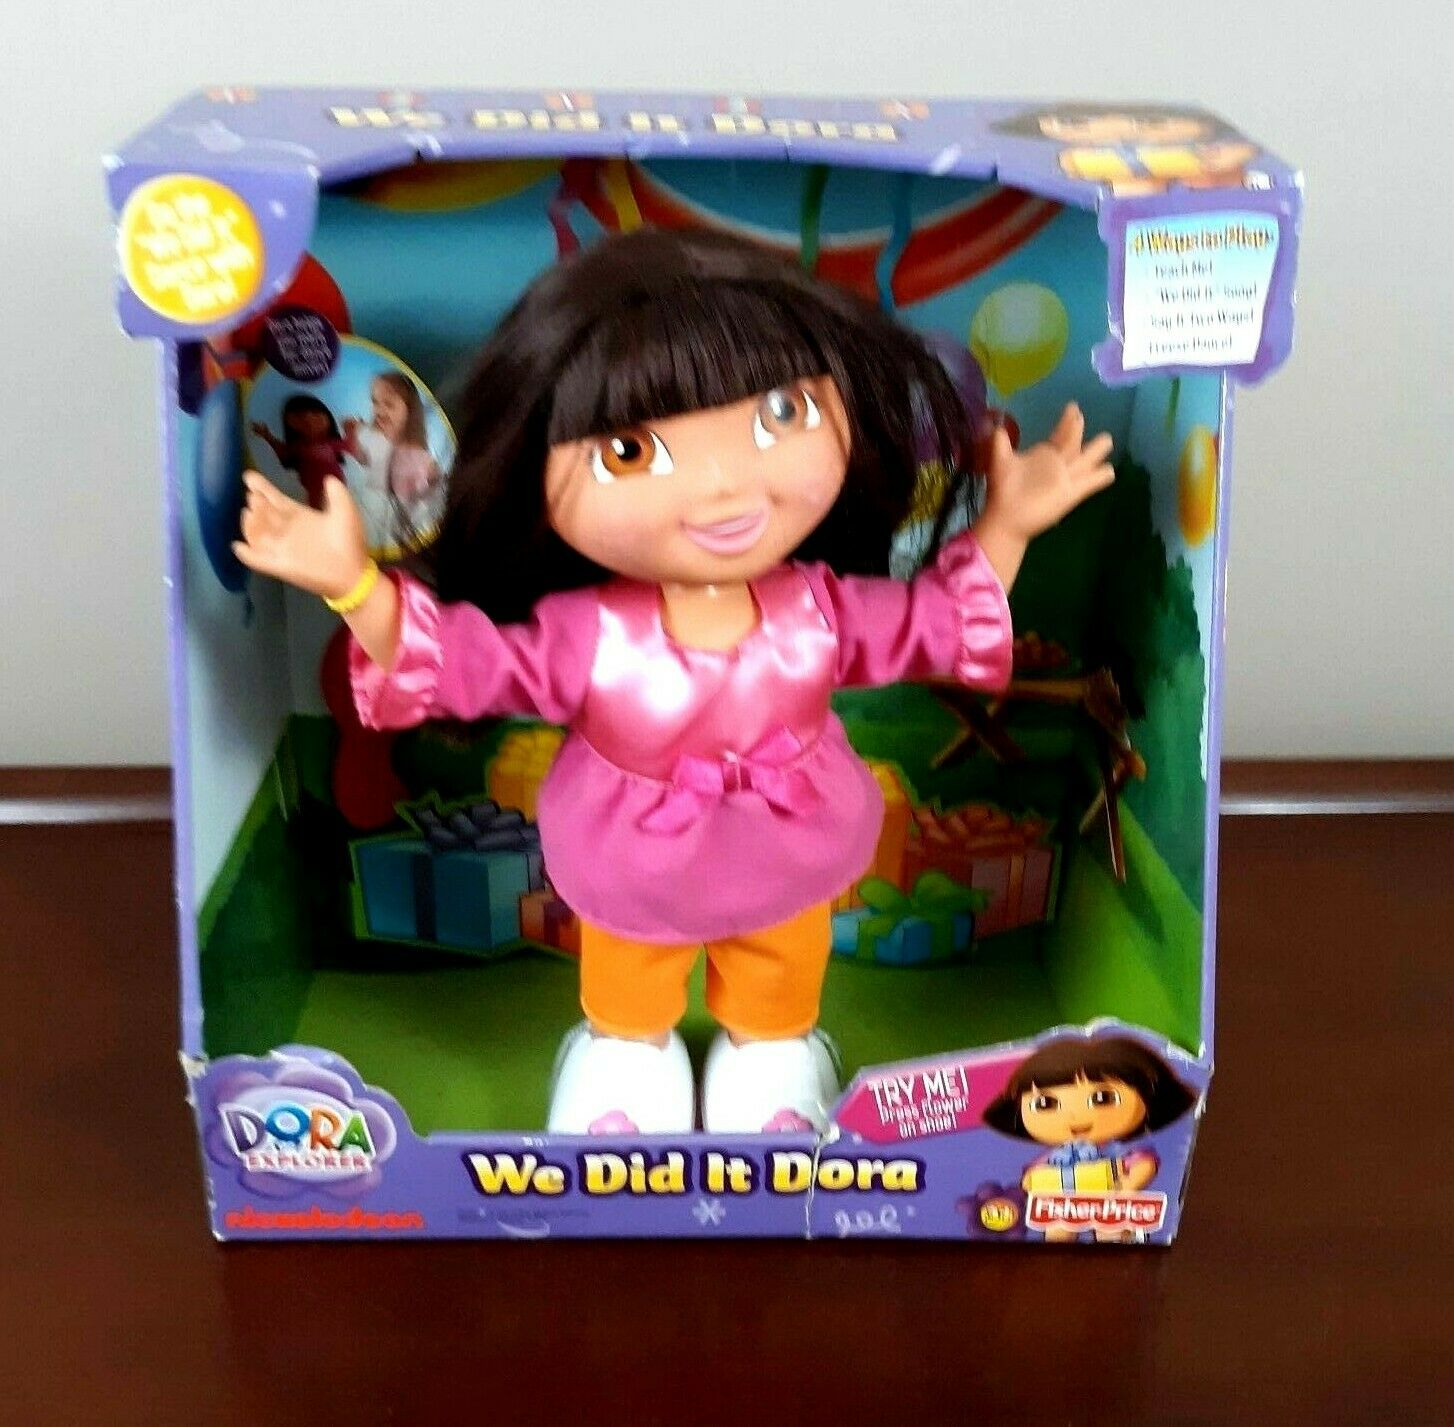 We Did It Dora Doll Singing Dancing Dora the Explorer BRAND NEW 14 in Tall Rare